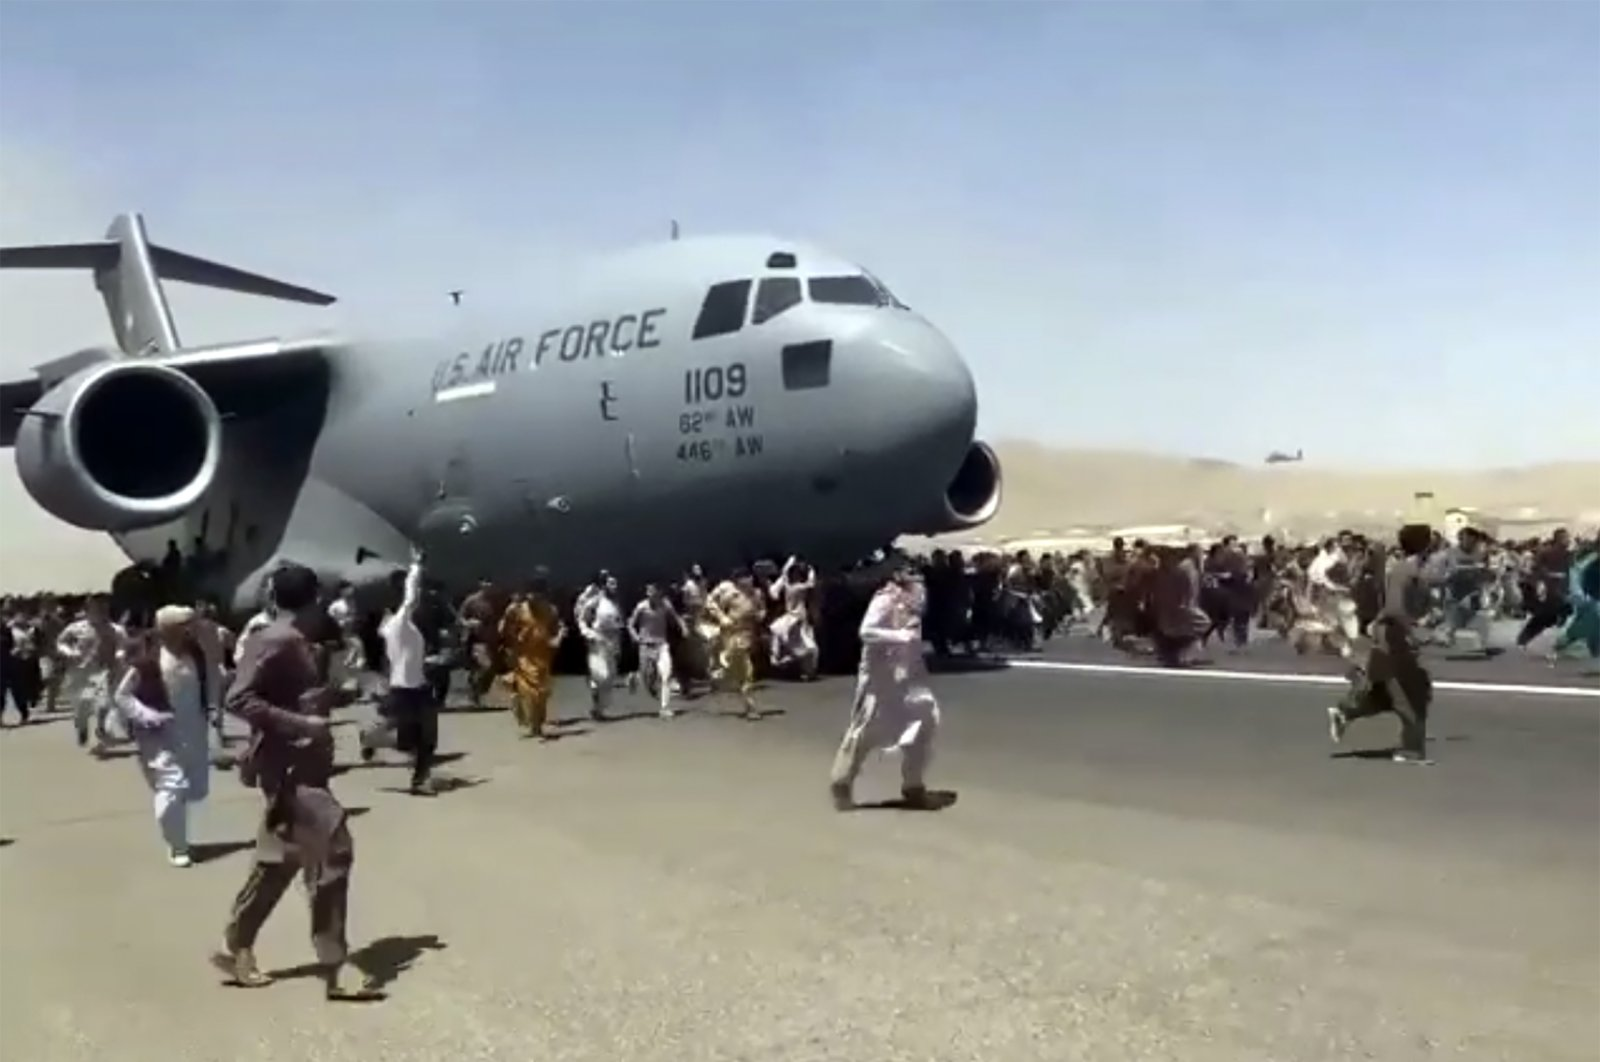 In this Aug. 16, 2021 file photo, hundreds of people run alongside a U.S. Air Force C-17 transport plane as it moves down a runway of the international airport in Kabul, Afghanistan. (Verified UGC via AP, File)